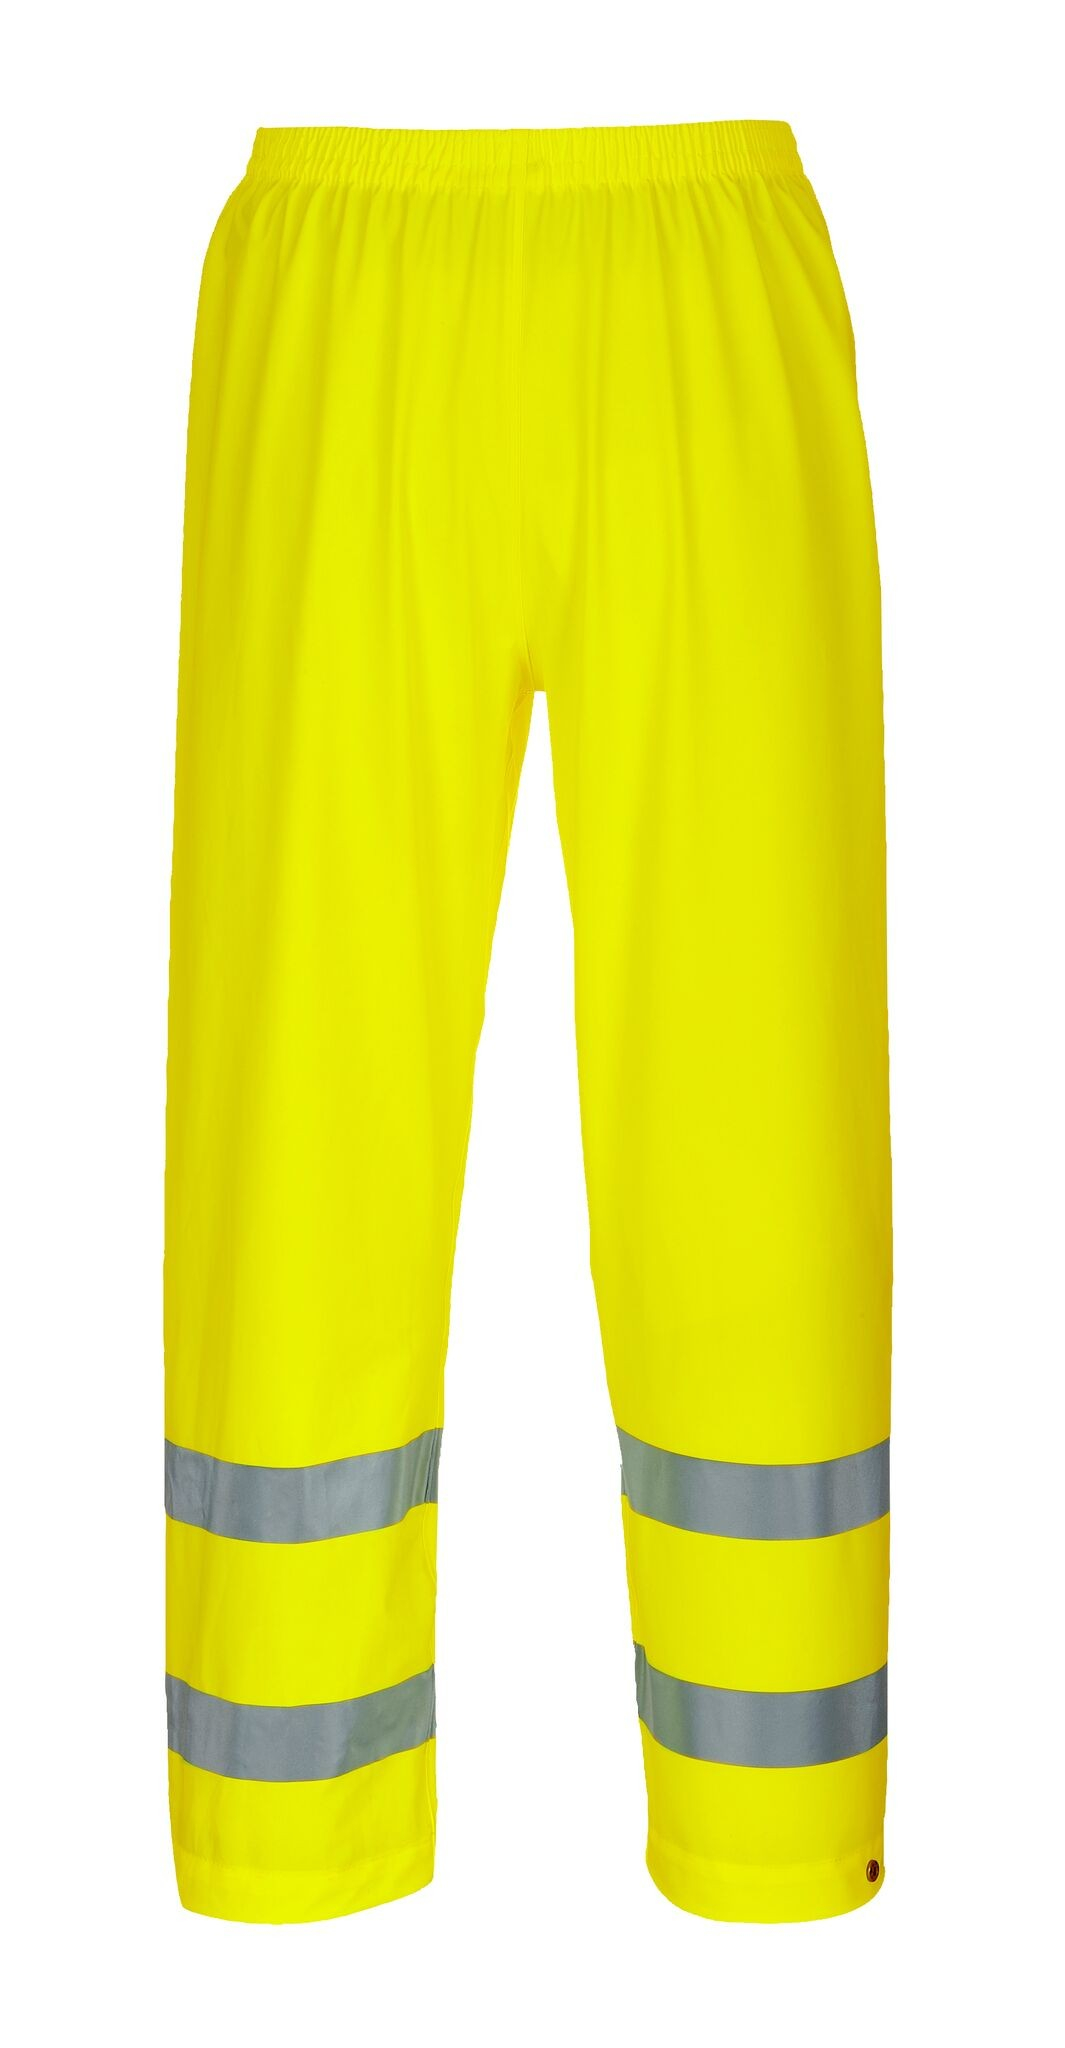 S493 Sealtex Trousers